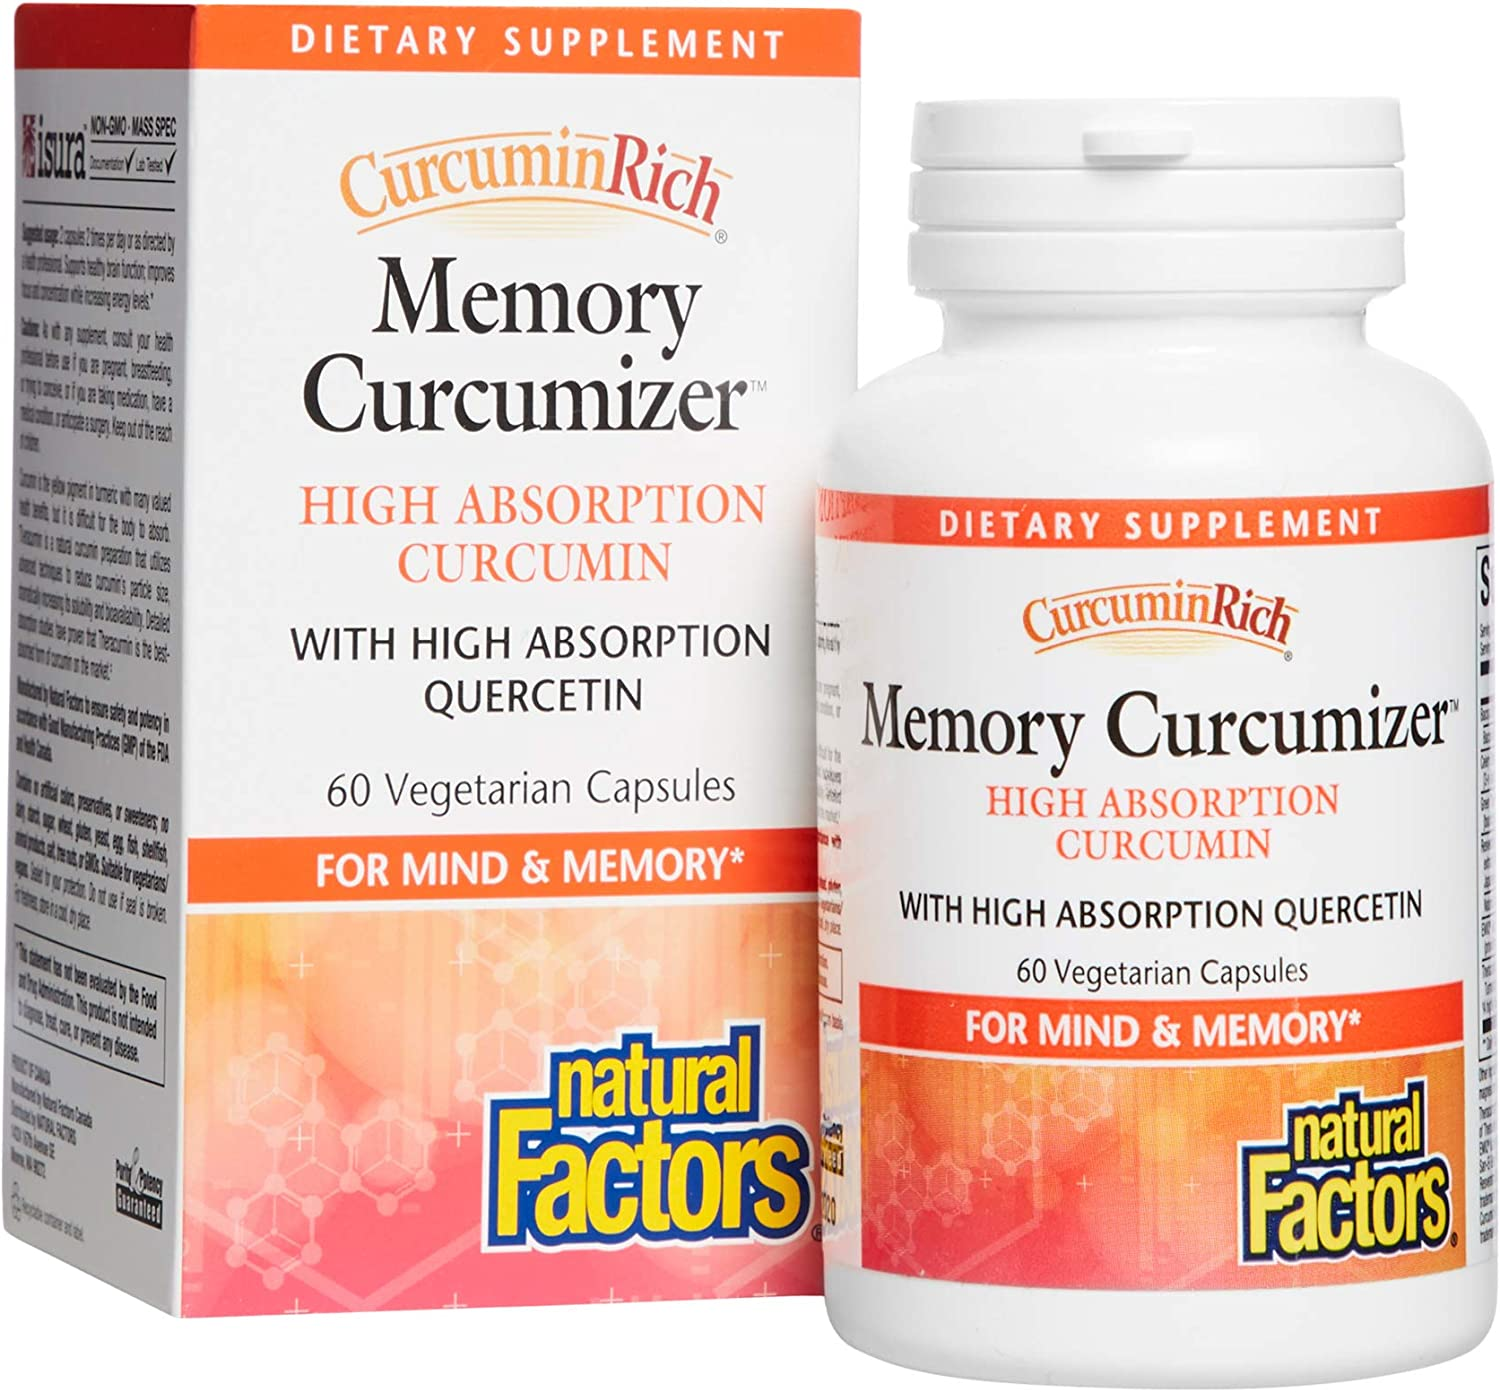 CurcuminRich Memory Curcumizer Challenge the lowest price by Factors Natural Brai Special price for a limited time Supports